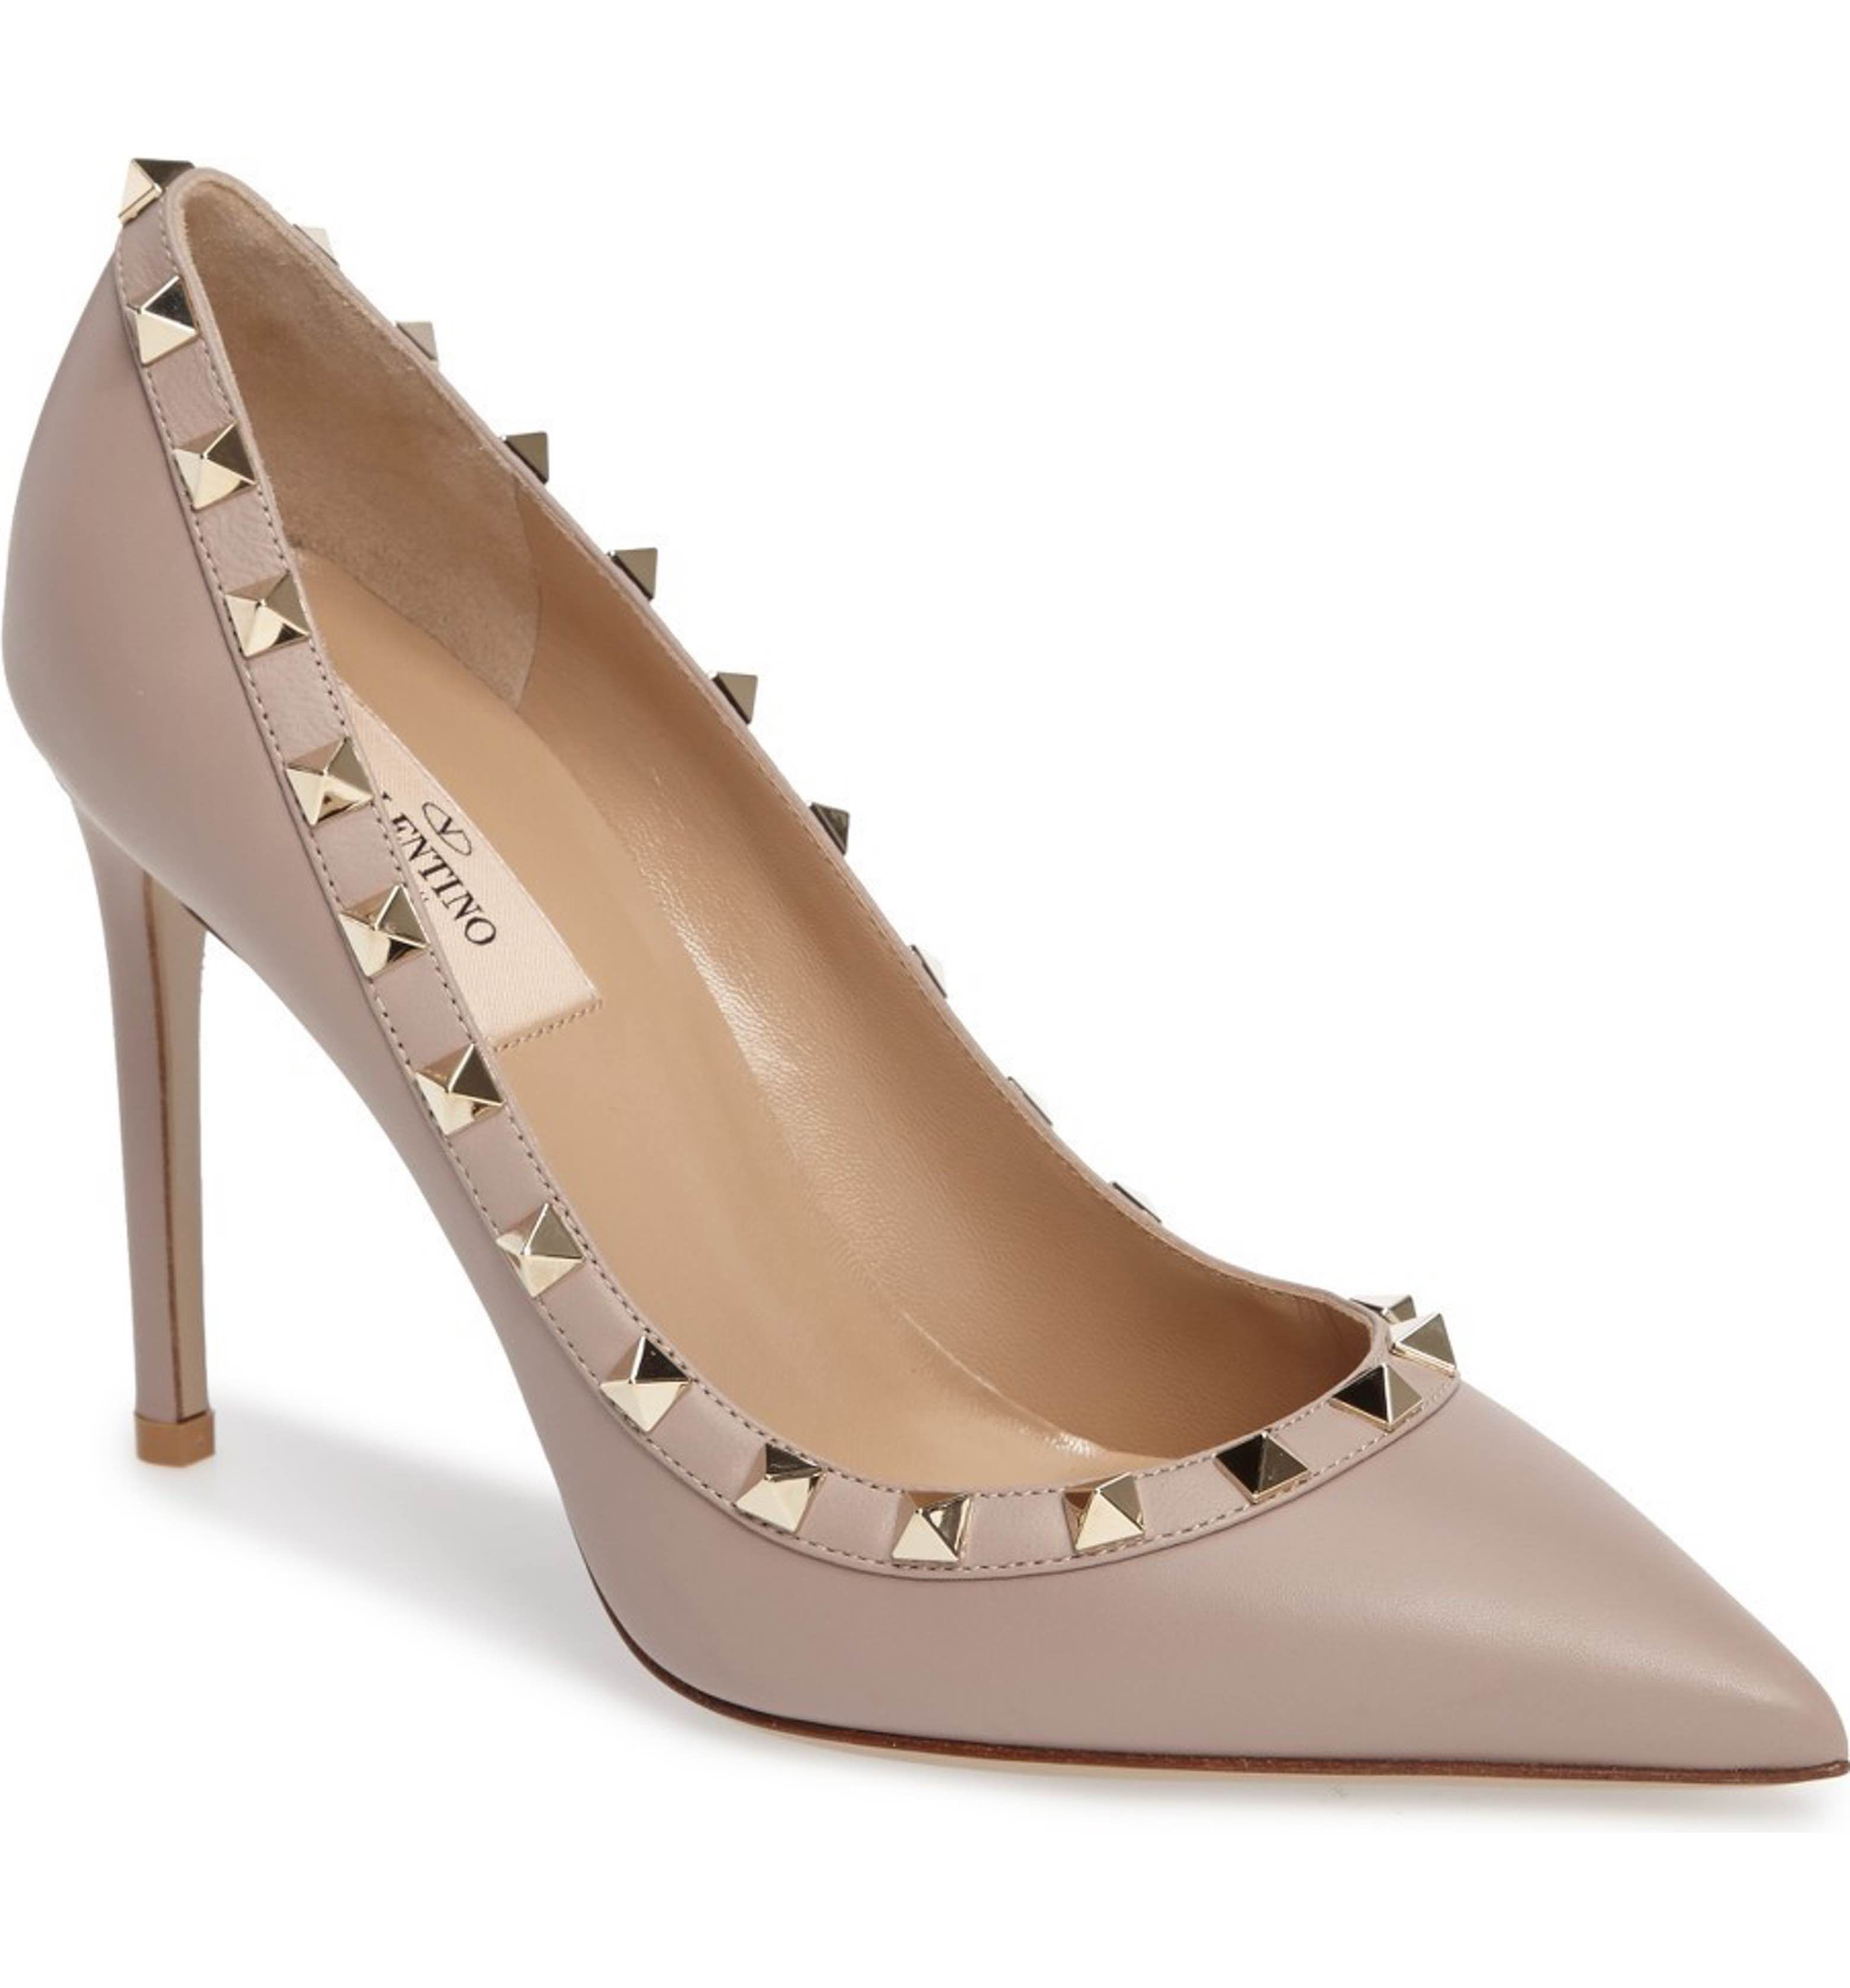 Valentino Rockstud Leather Pump in 2020 | Shoes women